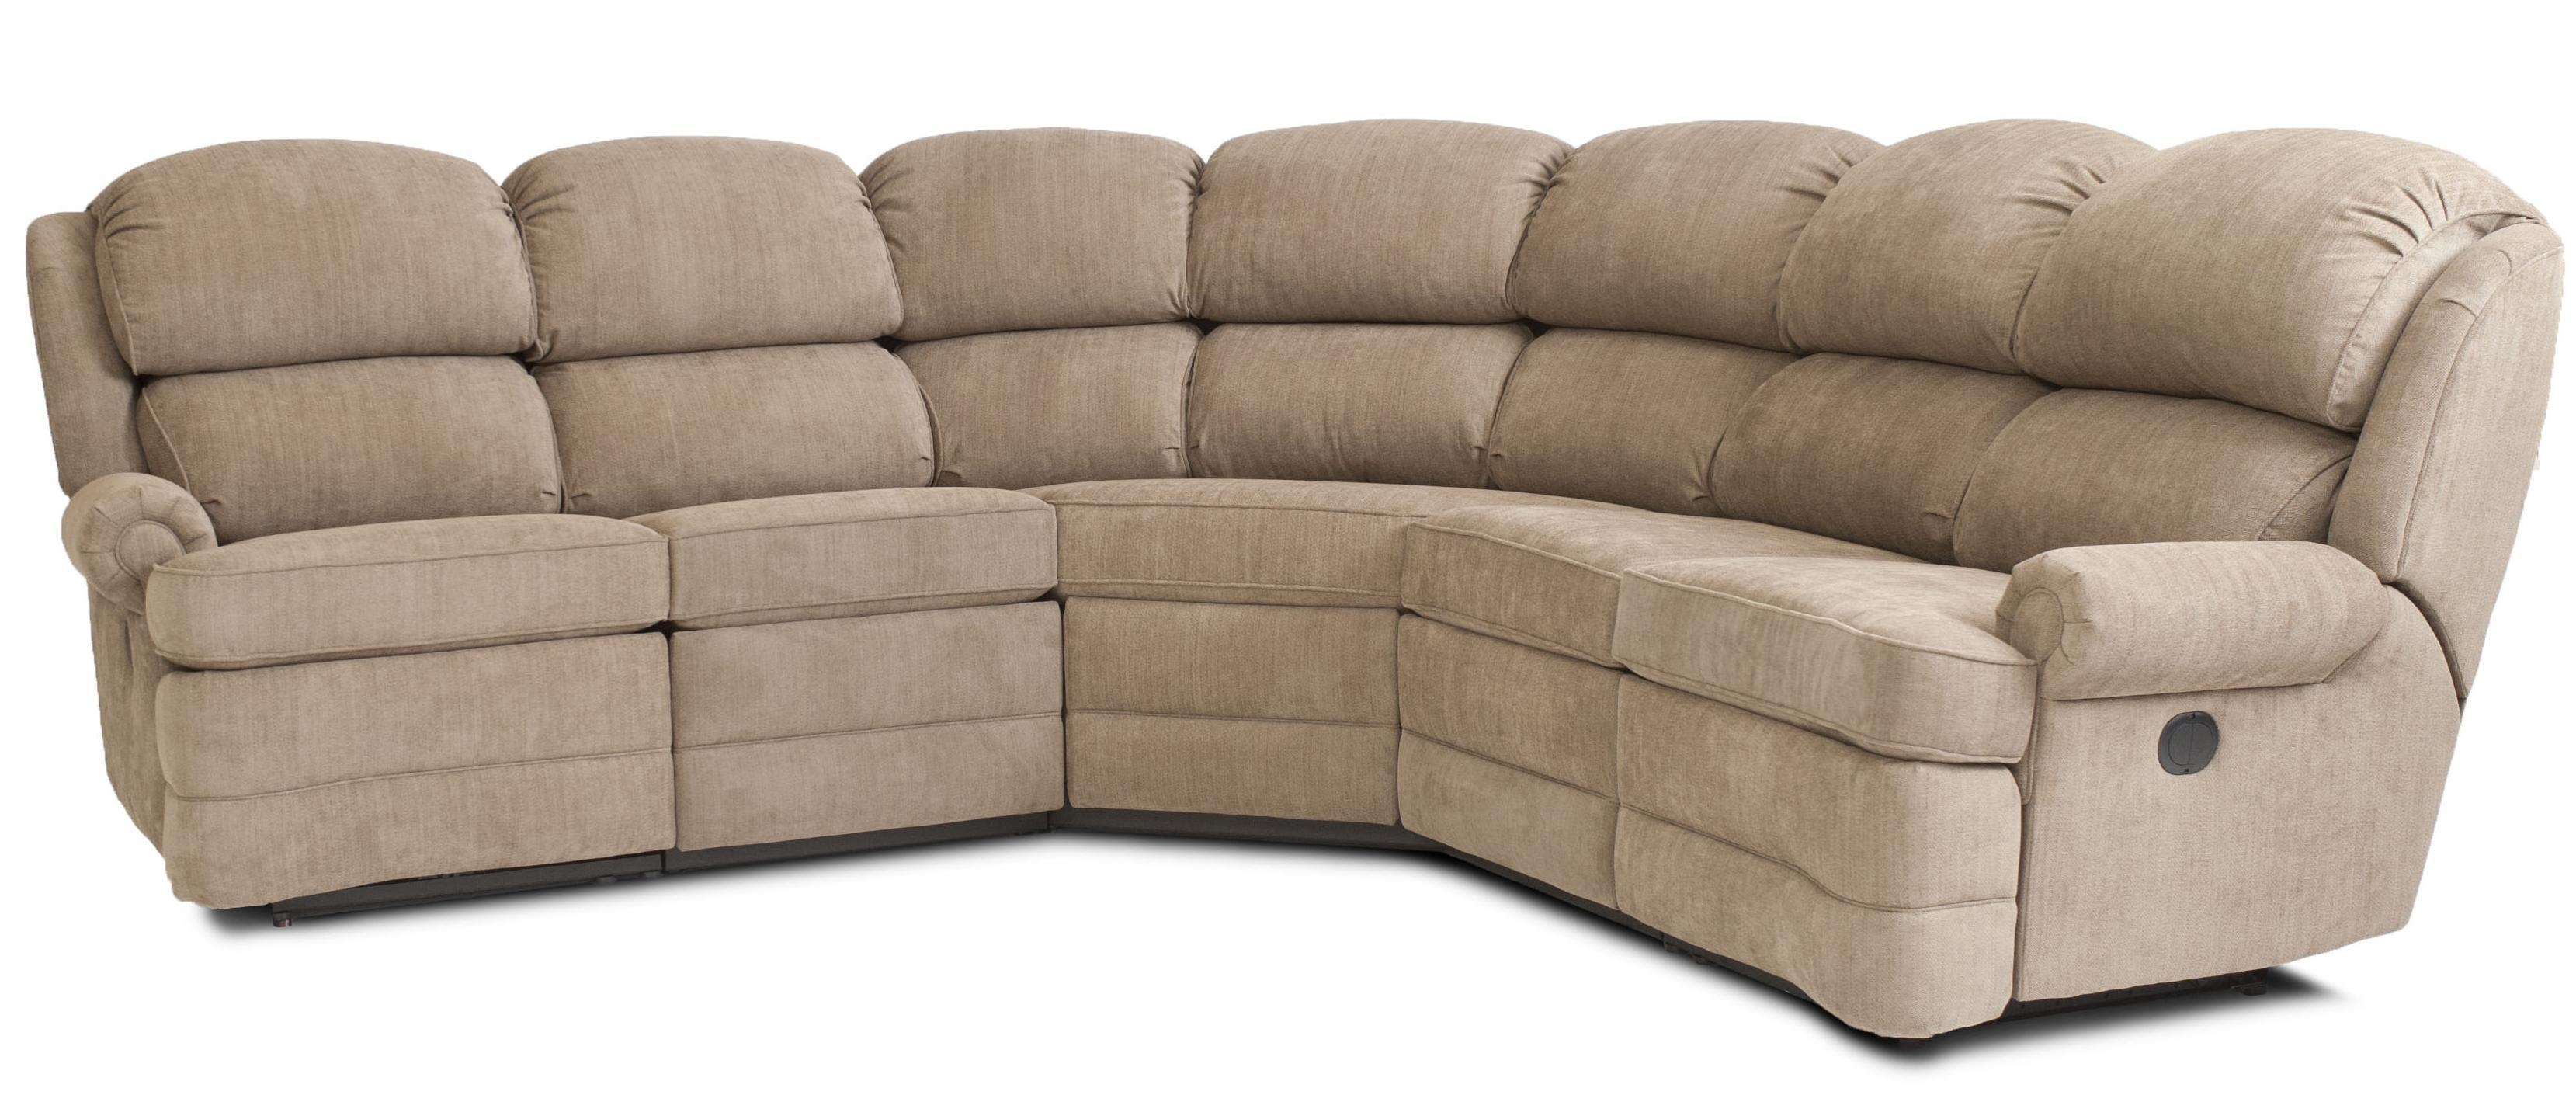 Furniture: Jedd Fabric Reclining Sectional Sofa | Sectional Throughout Jedd Fabric Reclining Sectional Sofa (View 14 of 20)